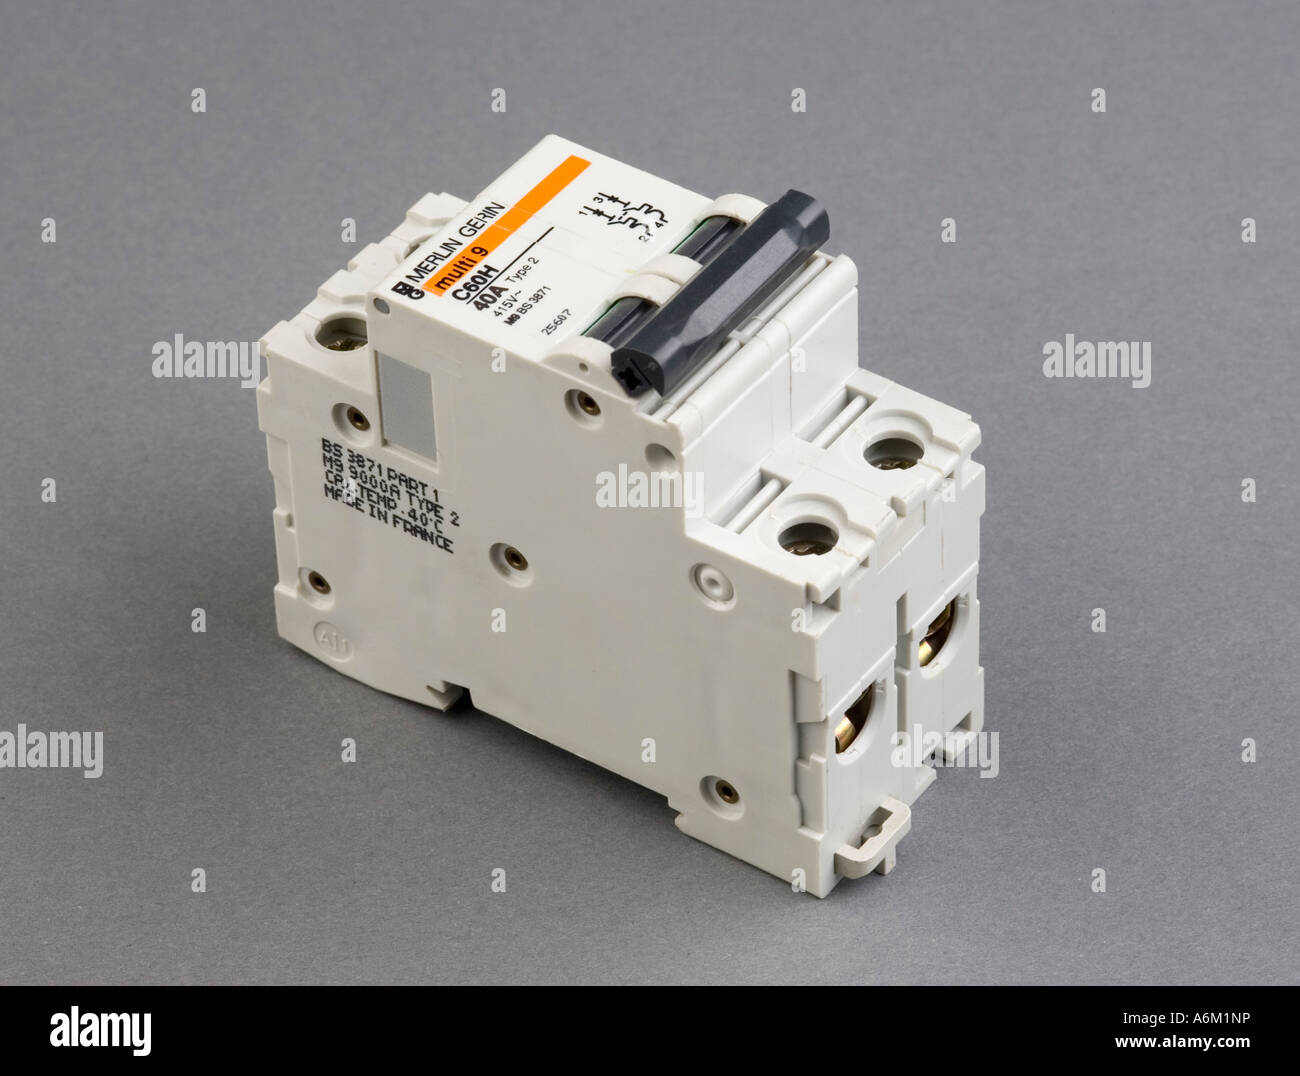 current overload circuit breaker Stock Photo: 11603793 - Alamy